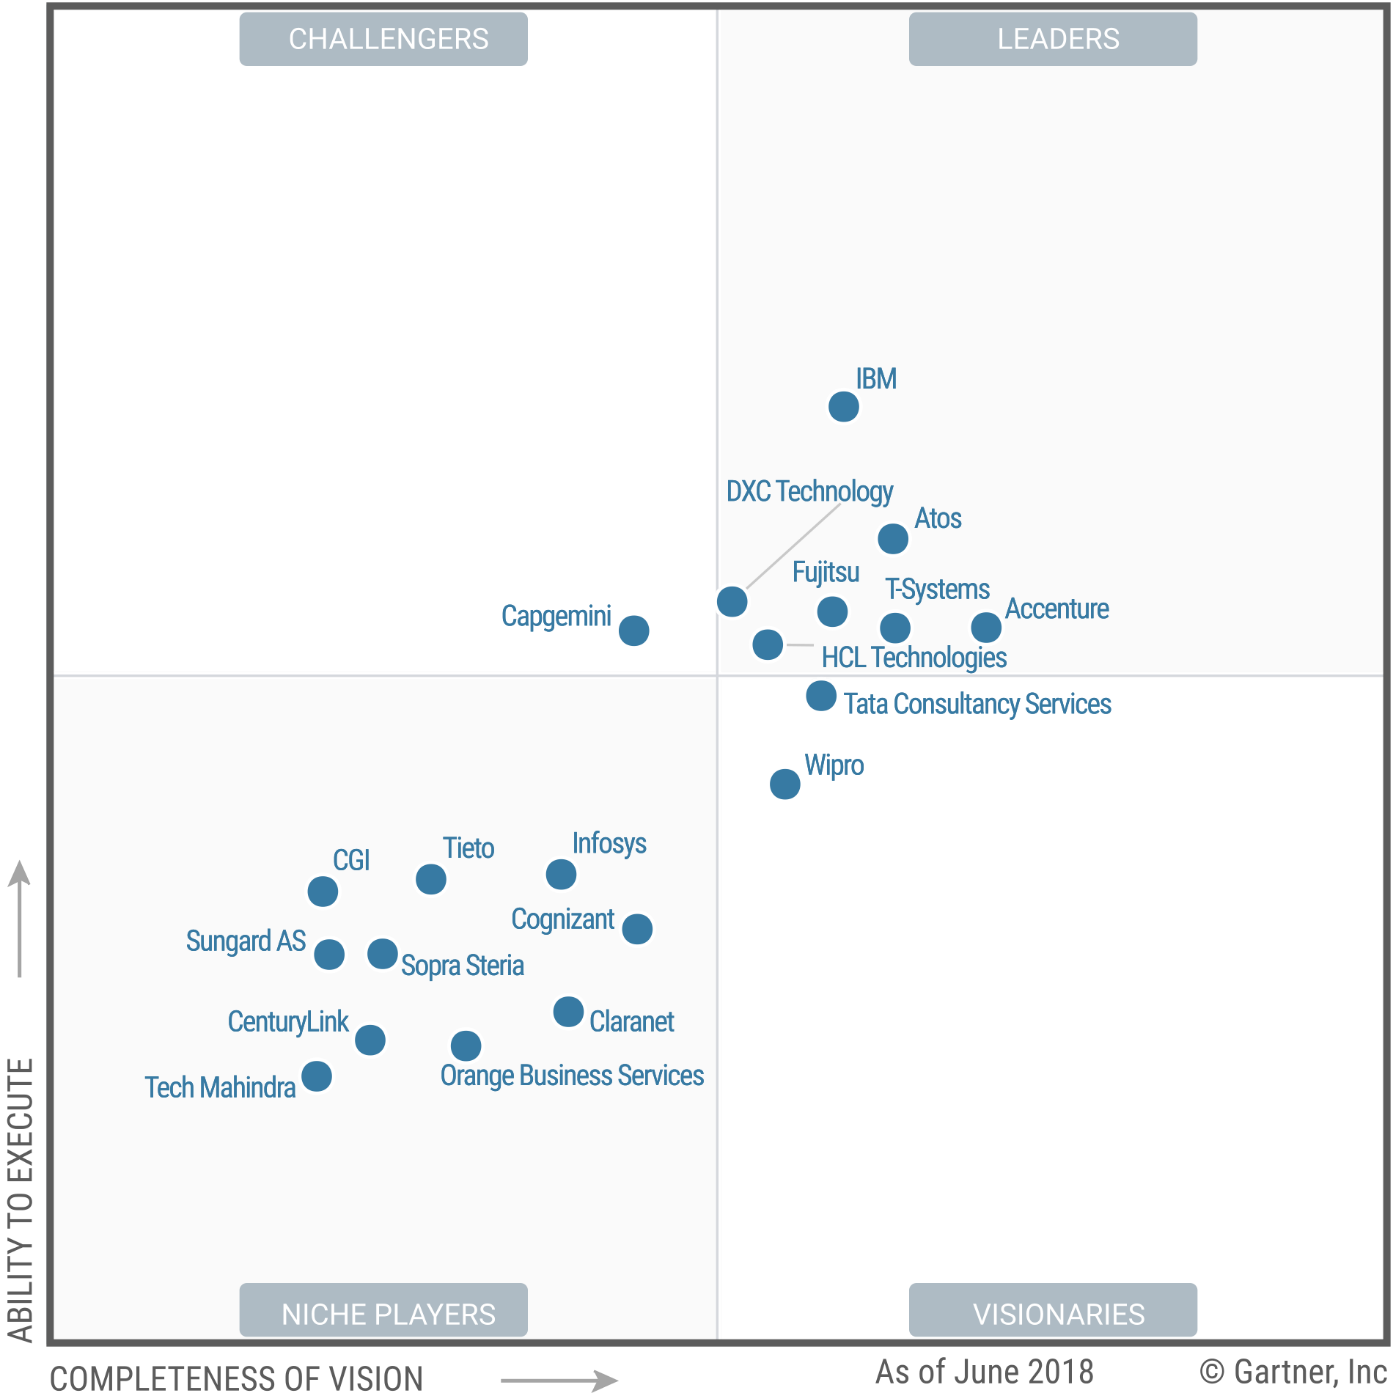 Claranet in Magic Quadrant van Gartner.png